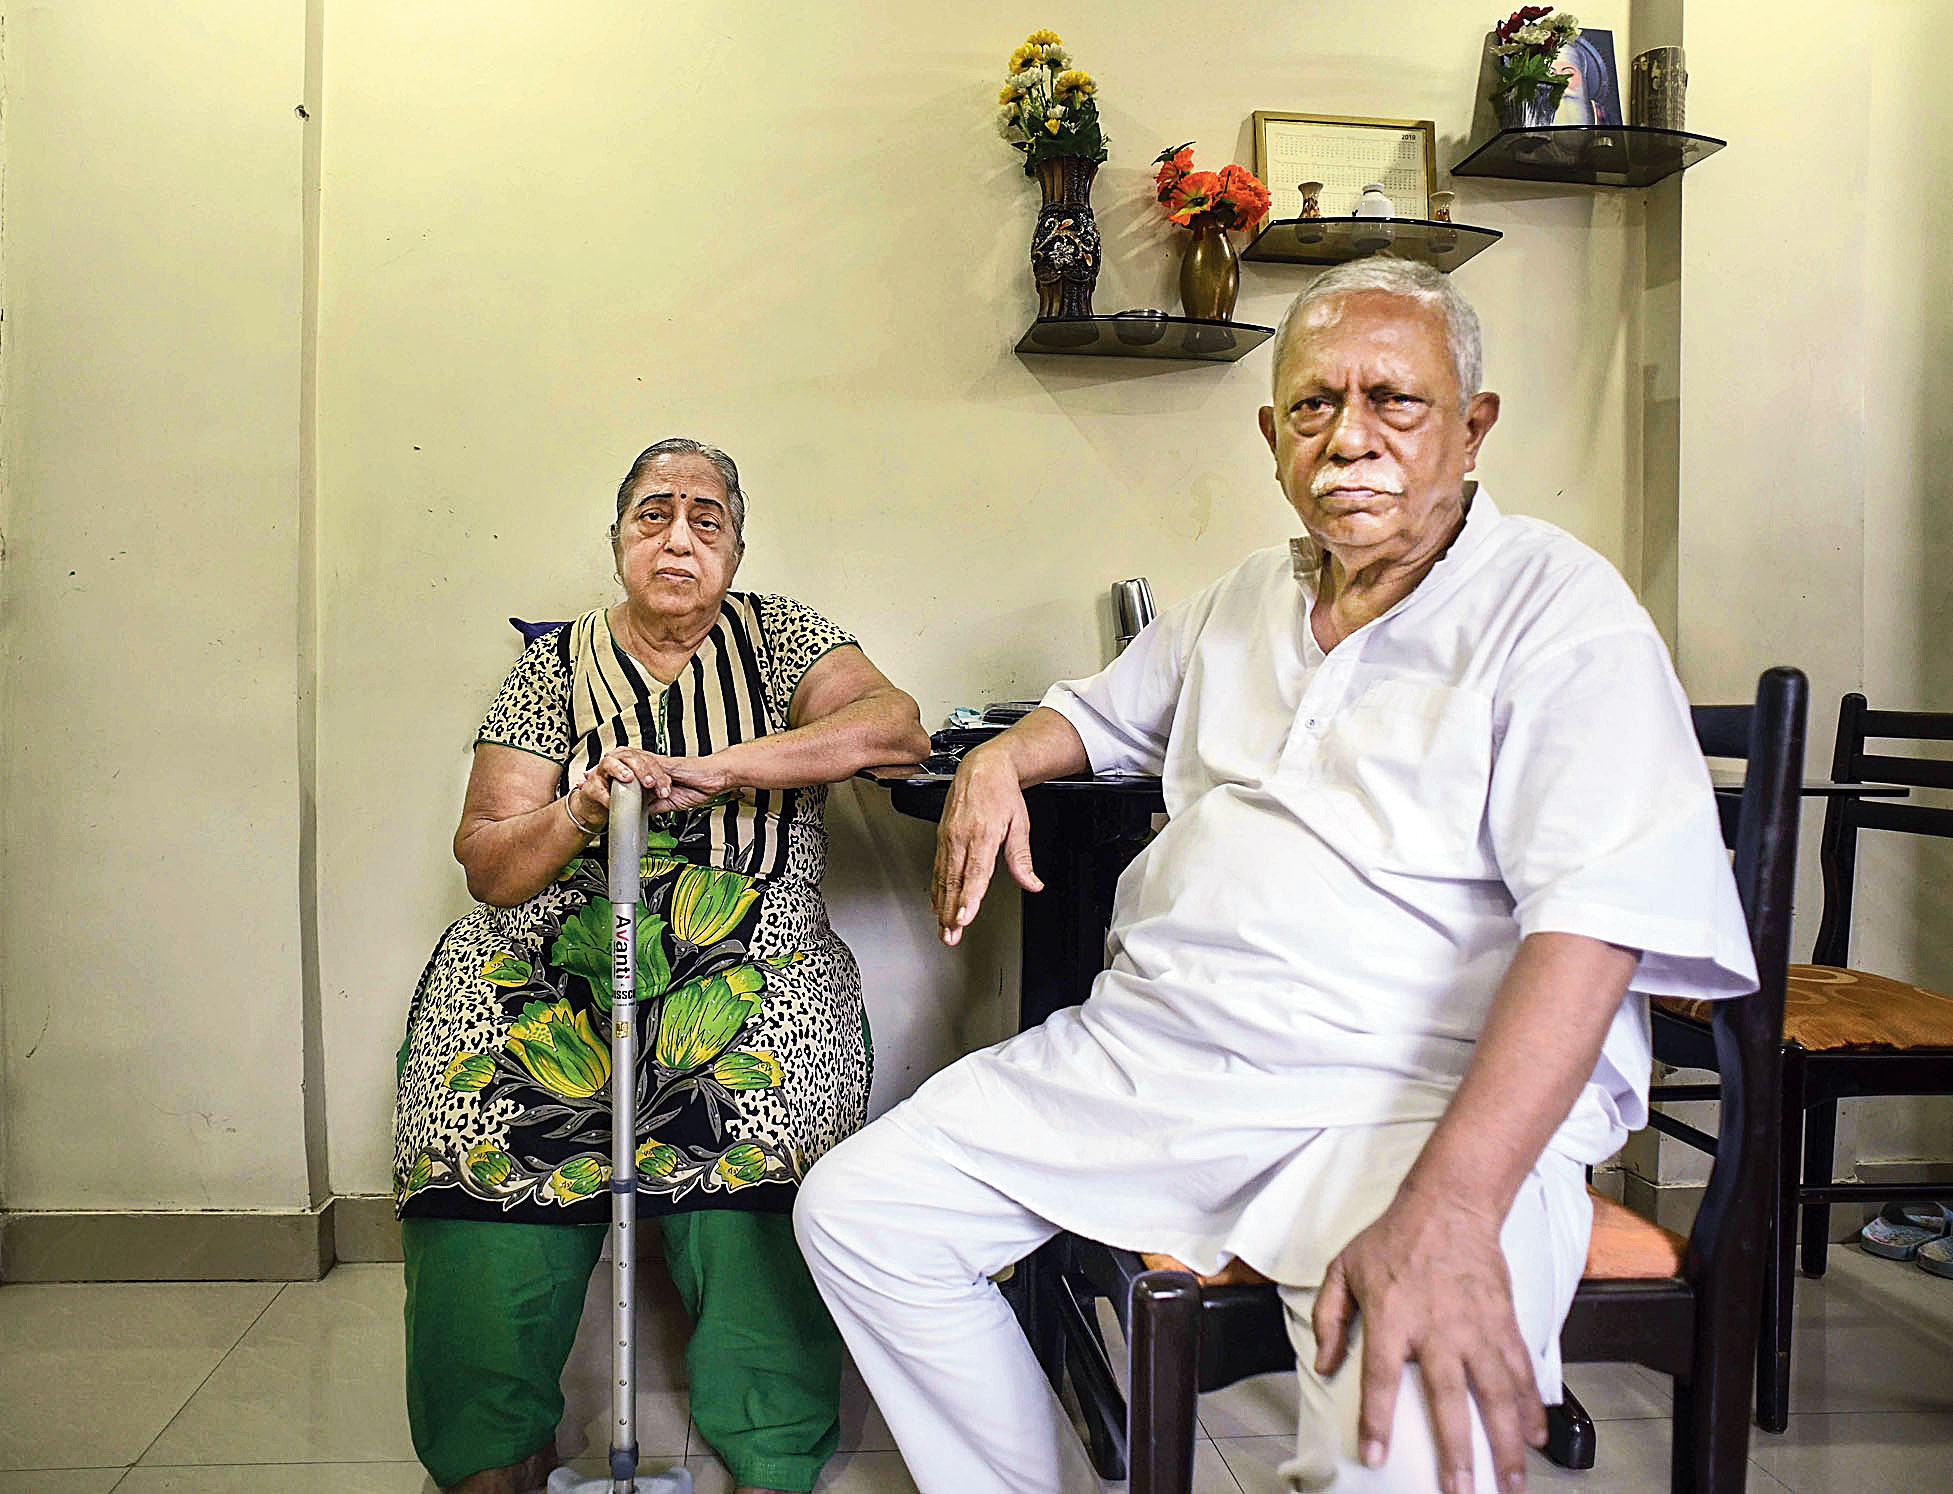 It's been nearly a month since curbs have been imposed on withdrawal of deposits from PMC Bank in Maharashtra. Harish Malkani (69) and his wife Rani Malkani, retired civil servants who live in Mumbai, have deposited all their savings in the bank and need the interest for daily expenses